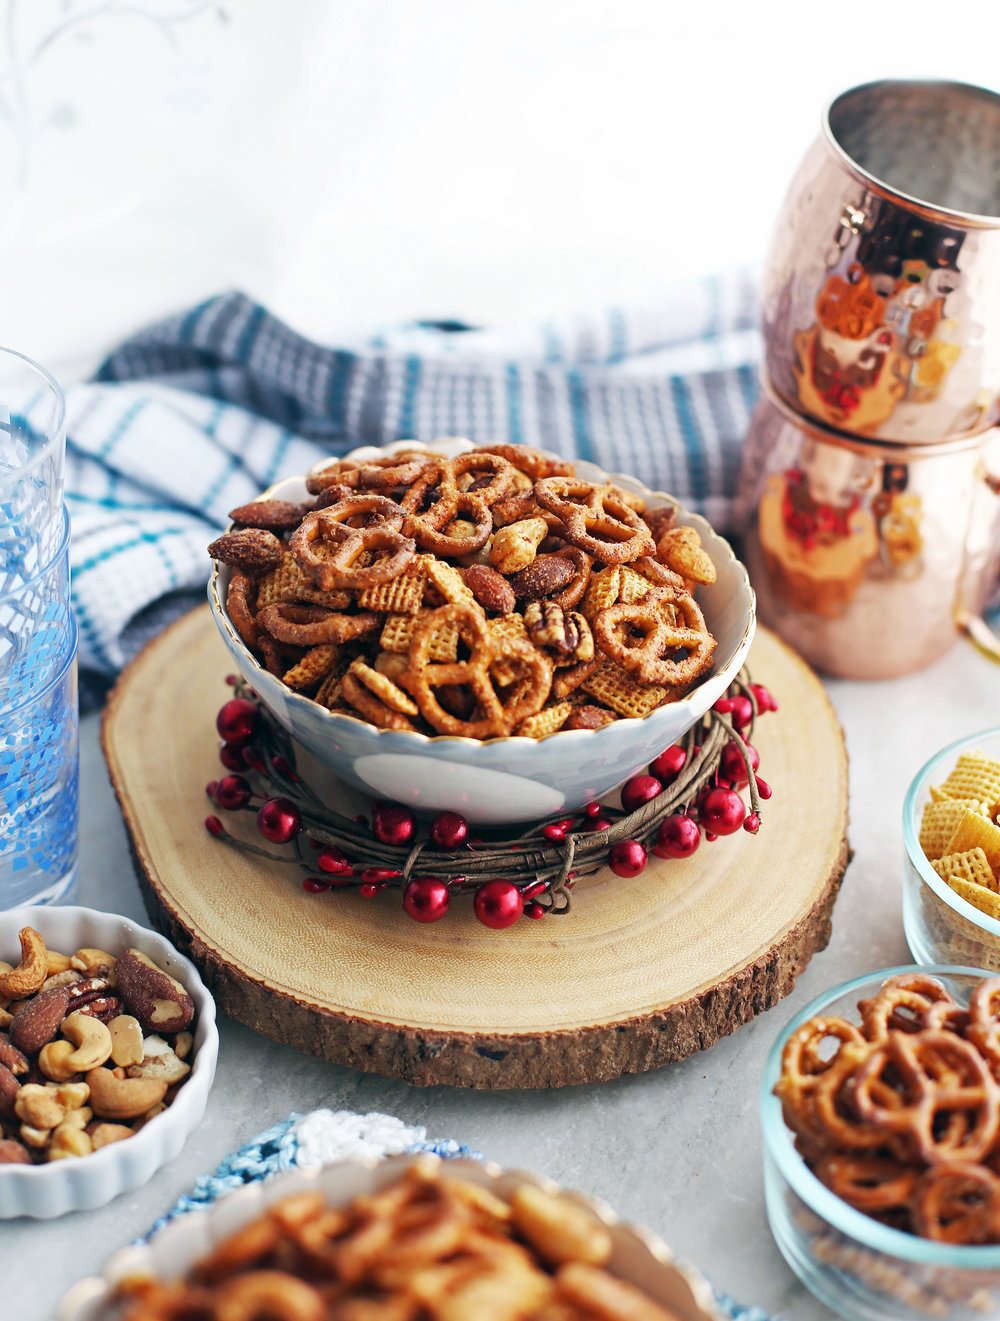 Side shot of a bowl of Maple Chili Nuts and Chex Mix with nuts, pretzels, and Chex cereal in the background.